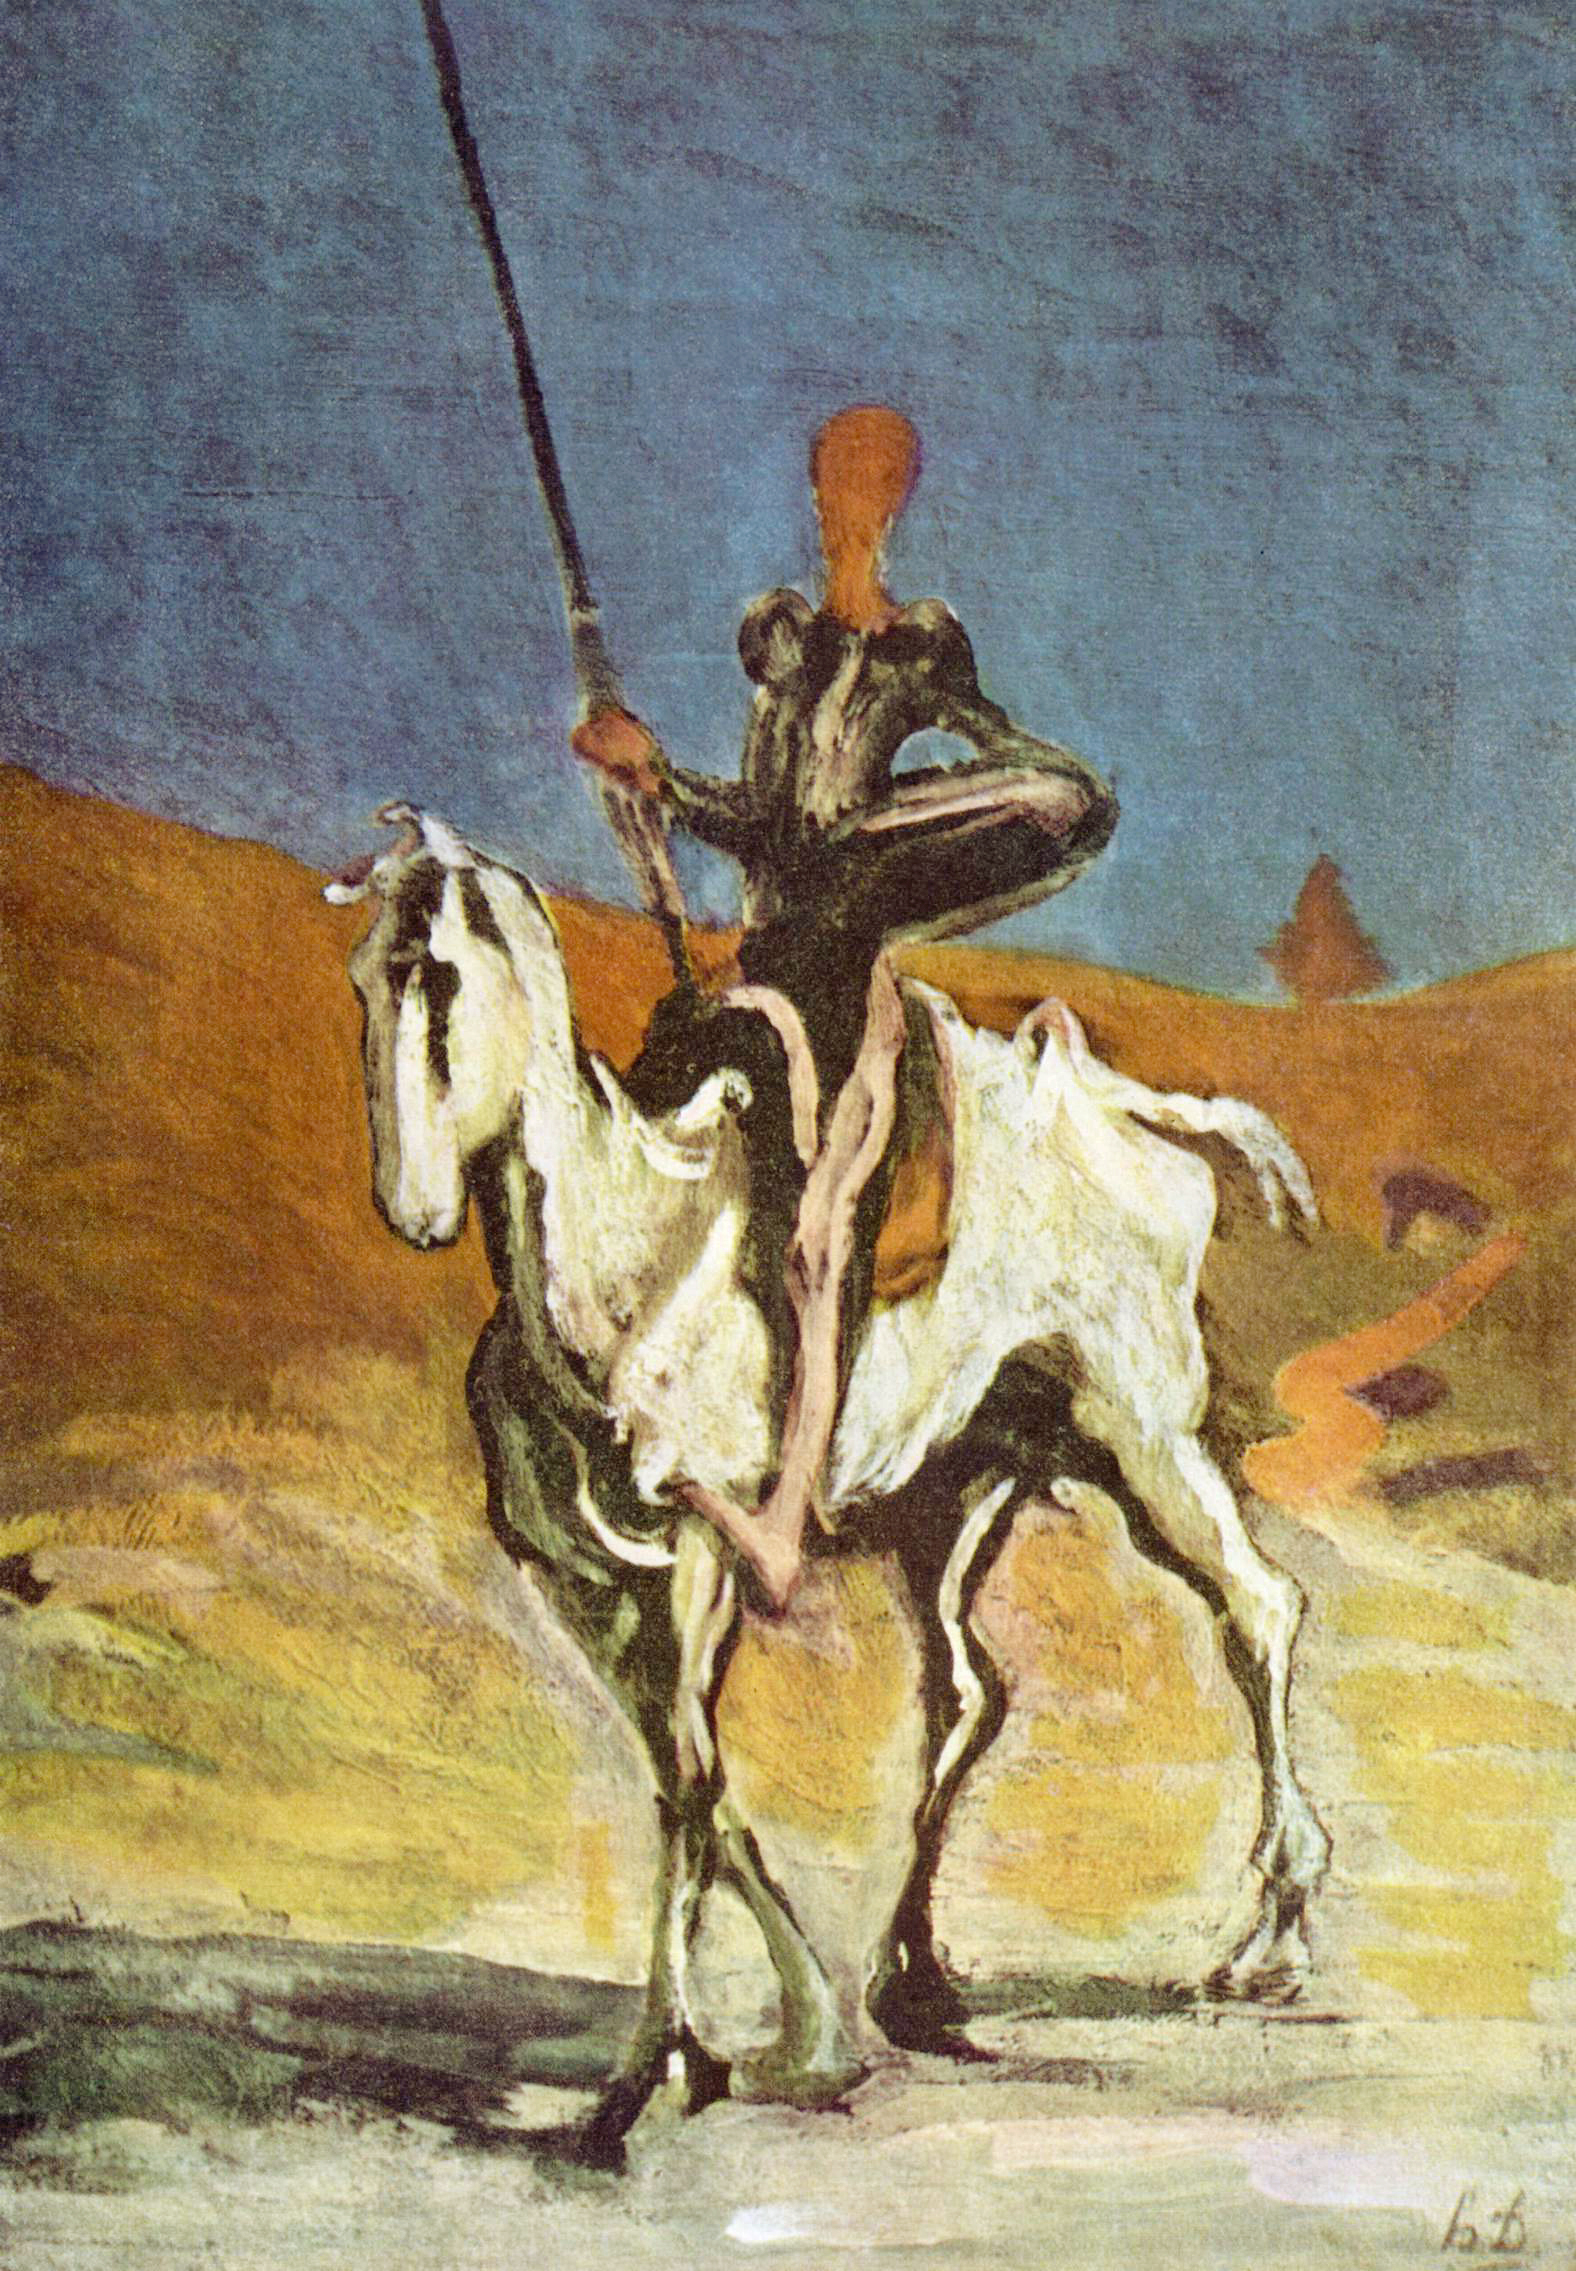 http://upload.wikimedia.org/wikipedia/commons/a/ac/Honor%C3%A9_Daumier_017_(Don_Quixote).jpg